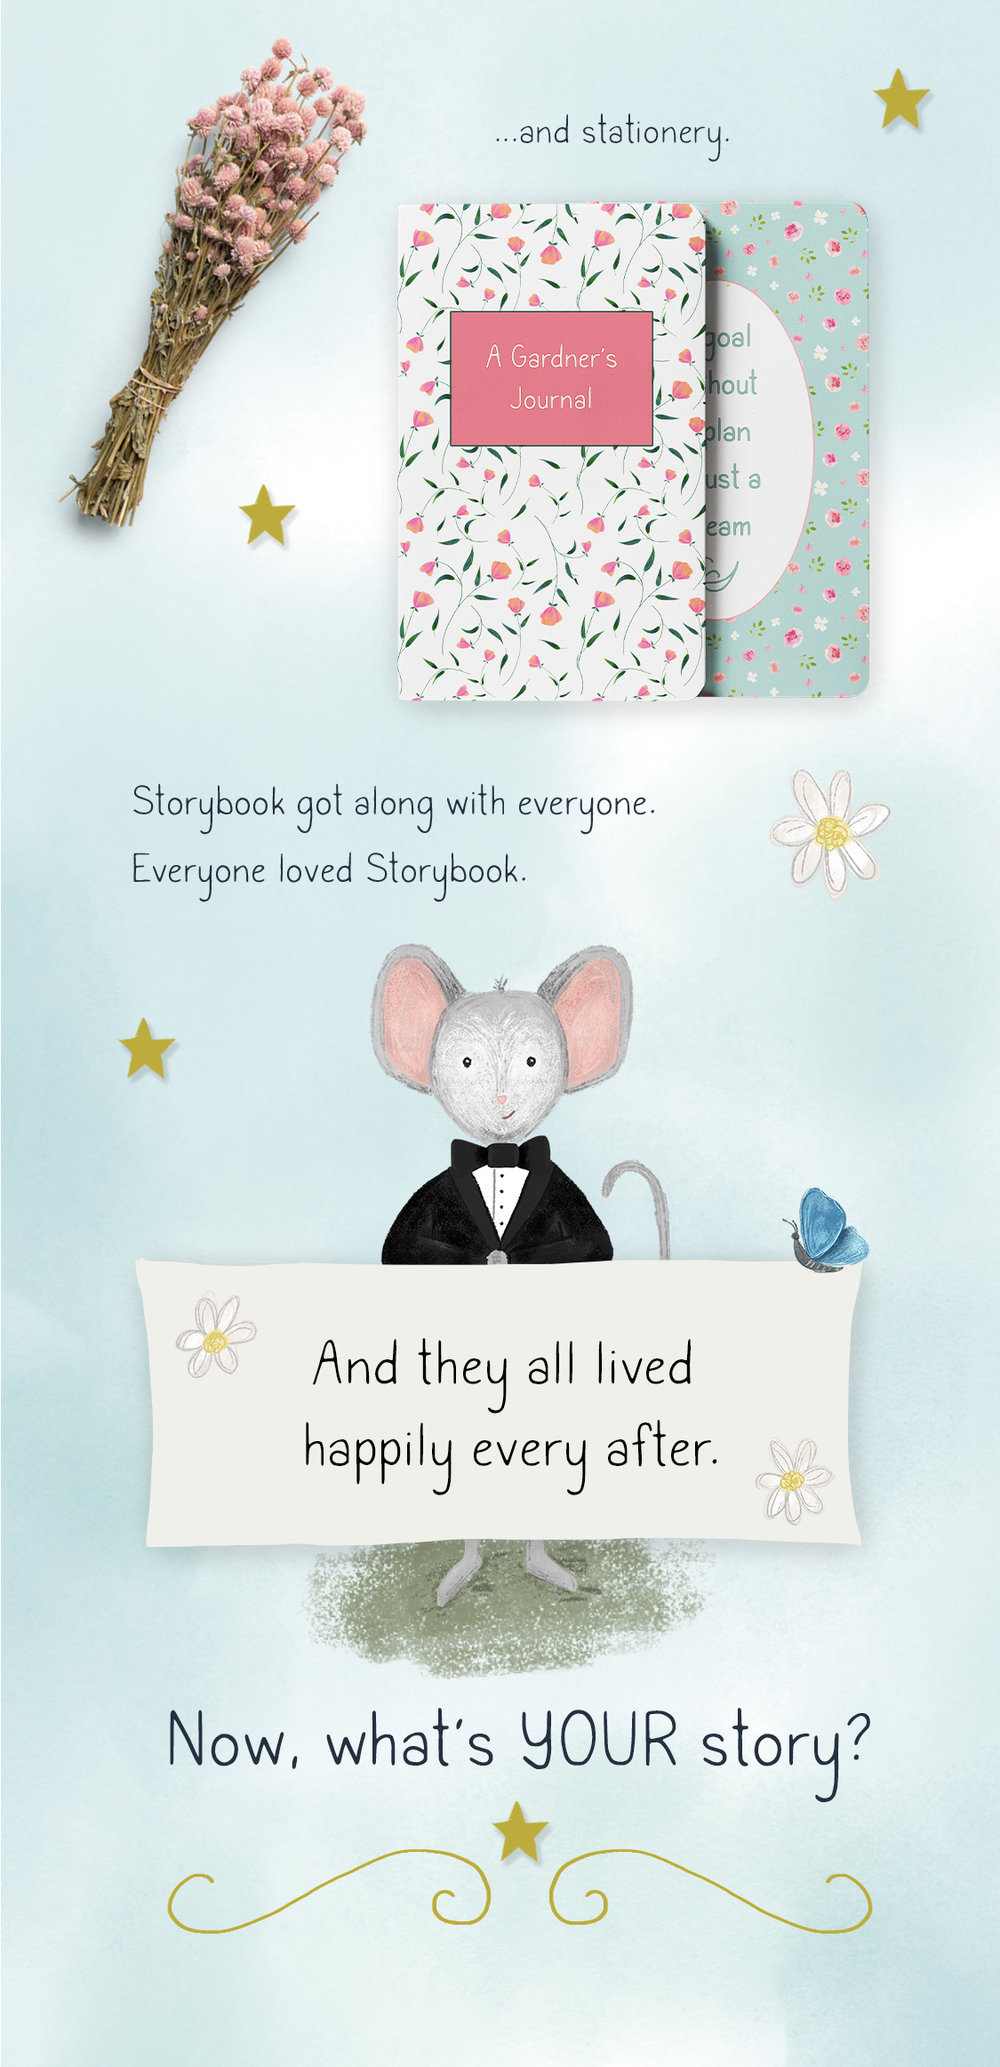 storybook-preview-section-5.jpg